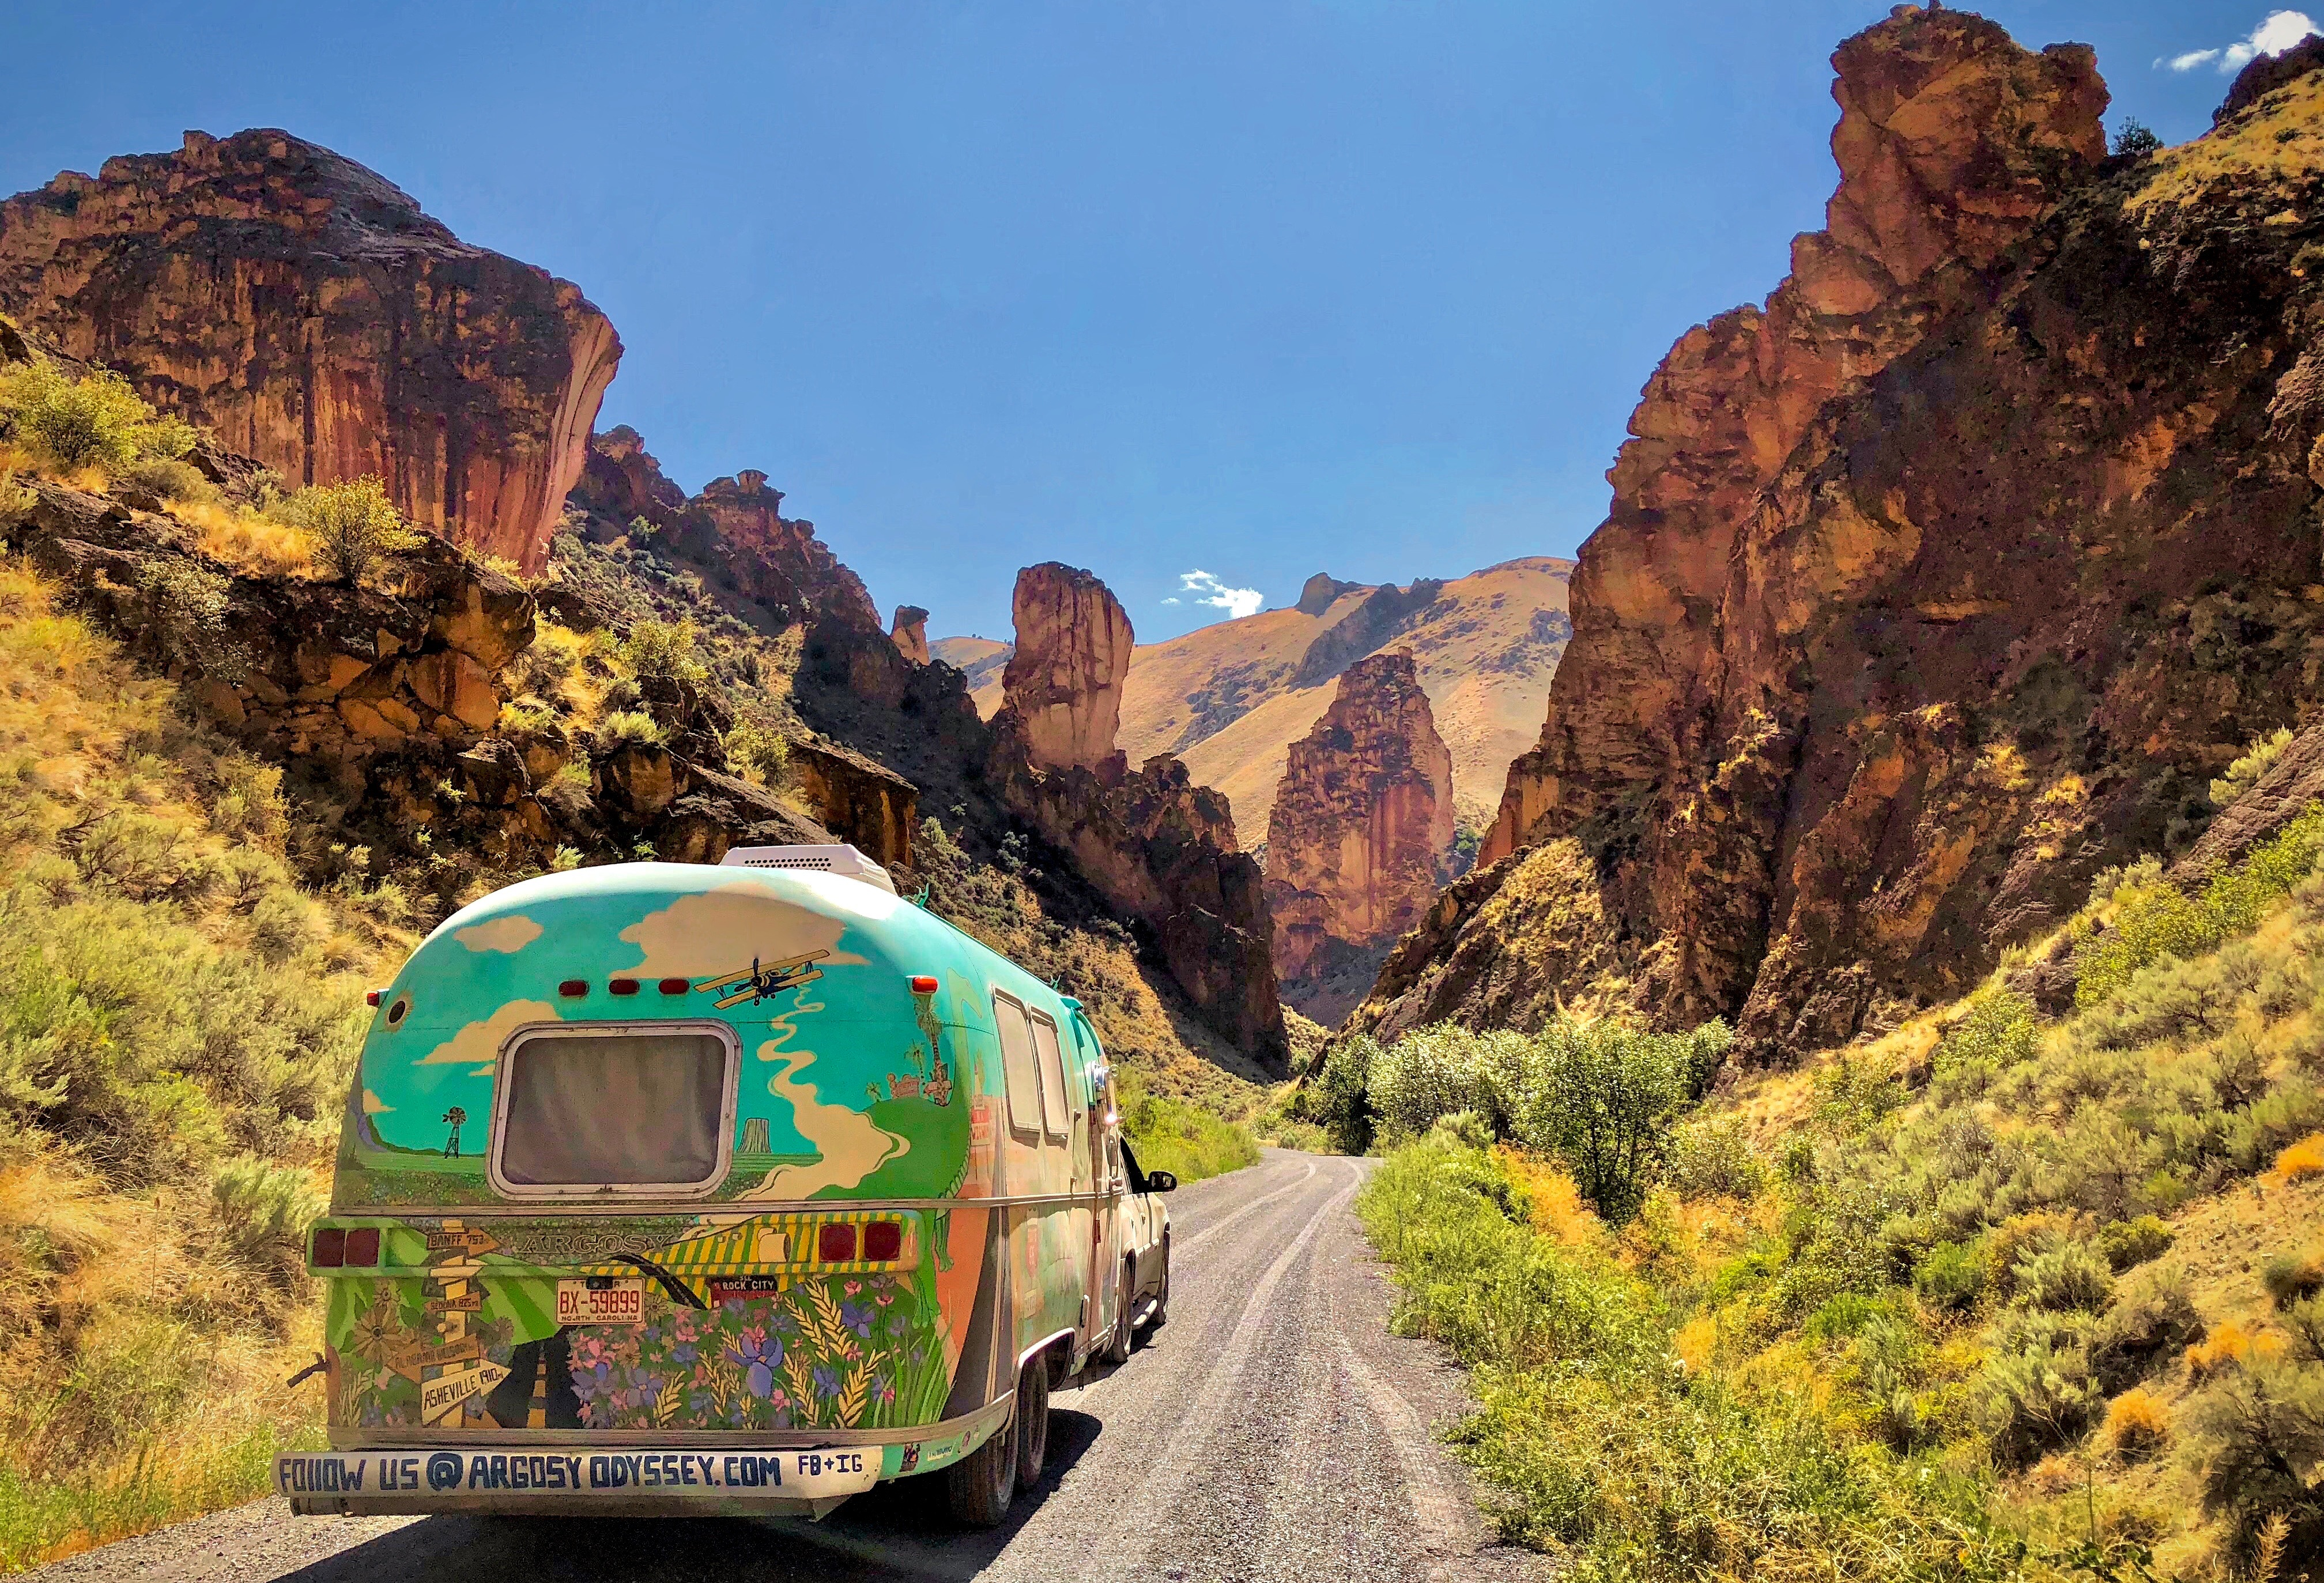 Airstream covered in mural-type paintings on a dirt road